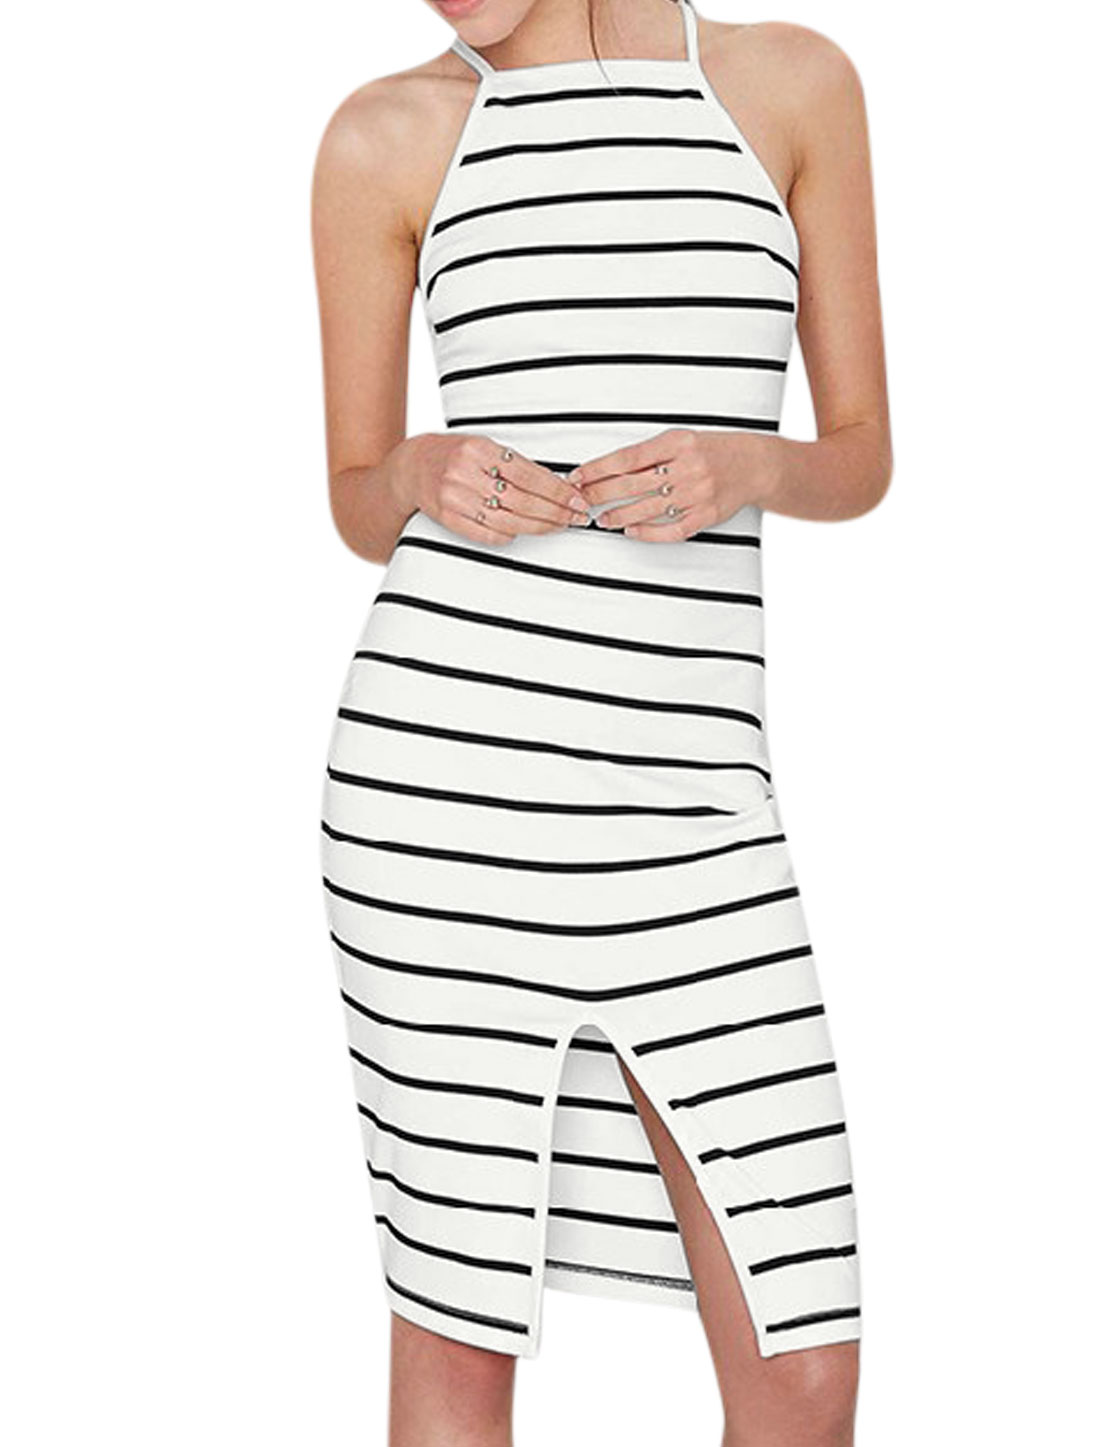 Woman Stripes Halter Neck Sleeveless Front Vent Unlined Sheath Dress Black White S